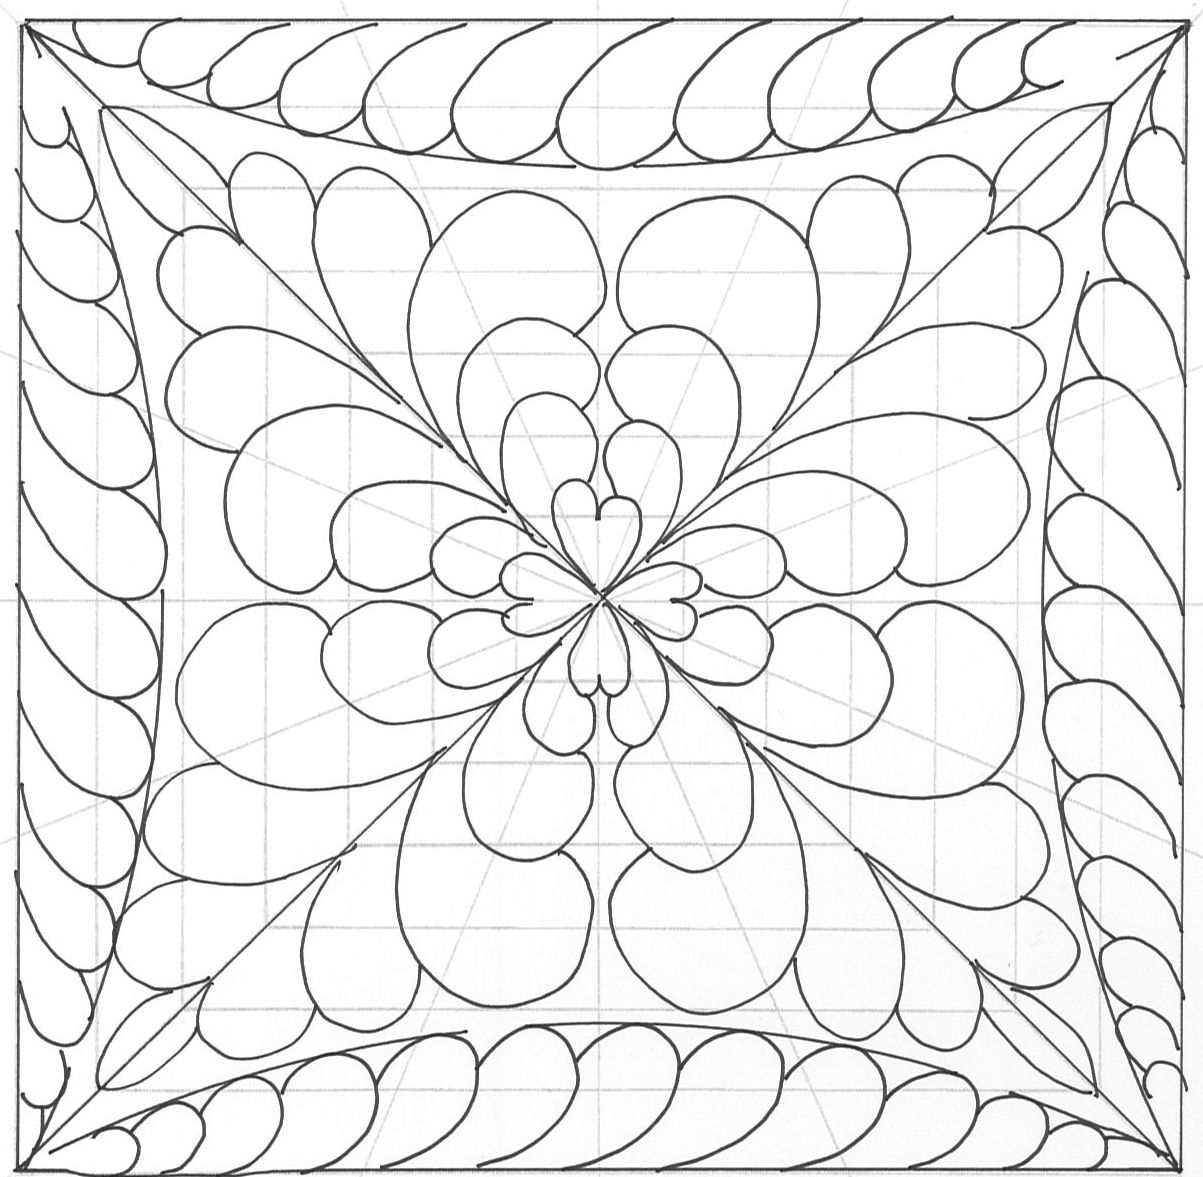 Heirloom Feathers handbook illustration. Easily divide and fill a block design using the square ...